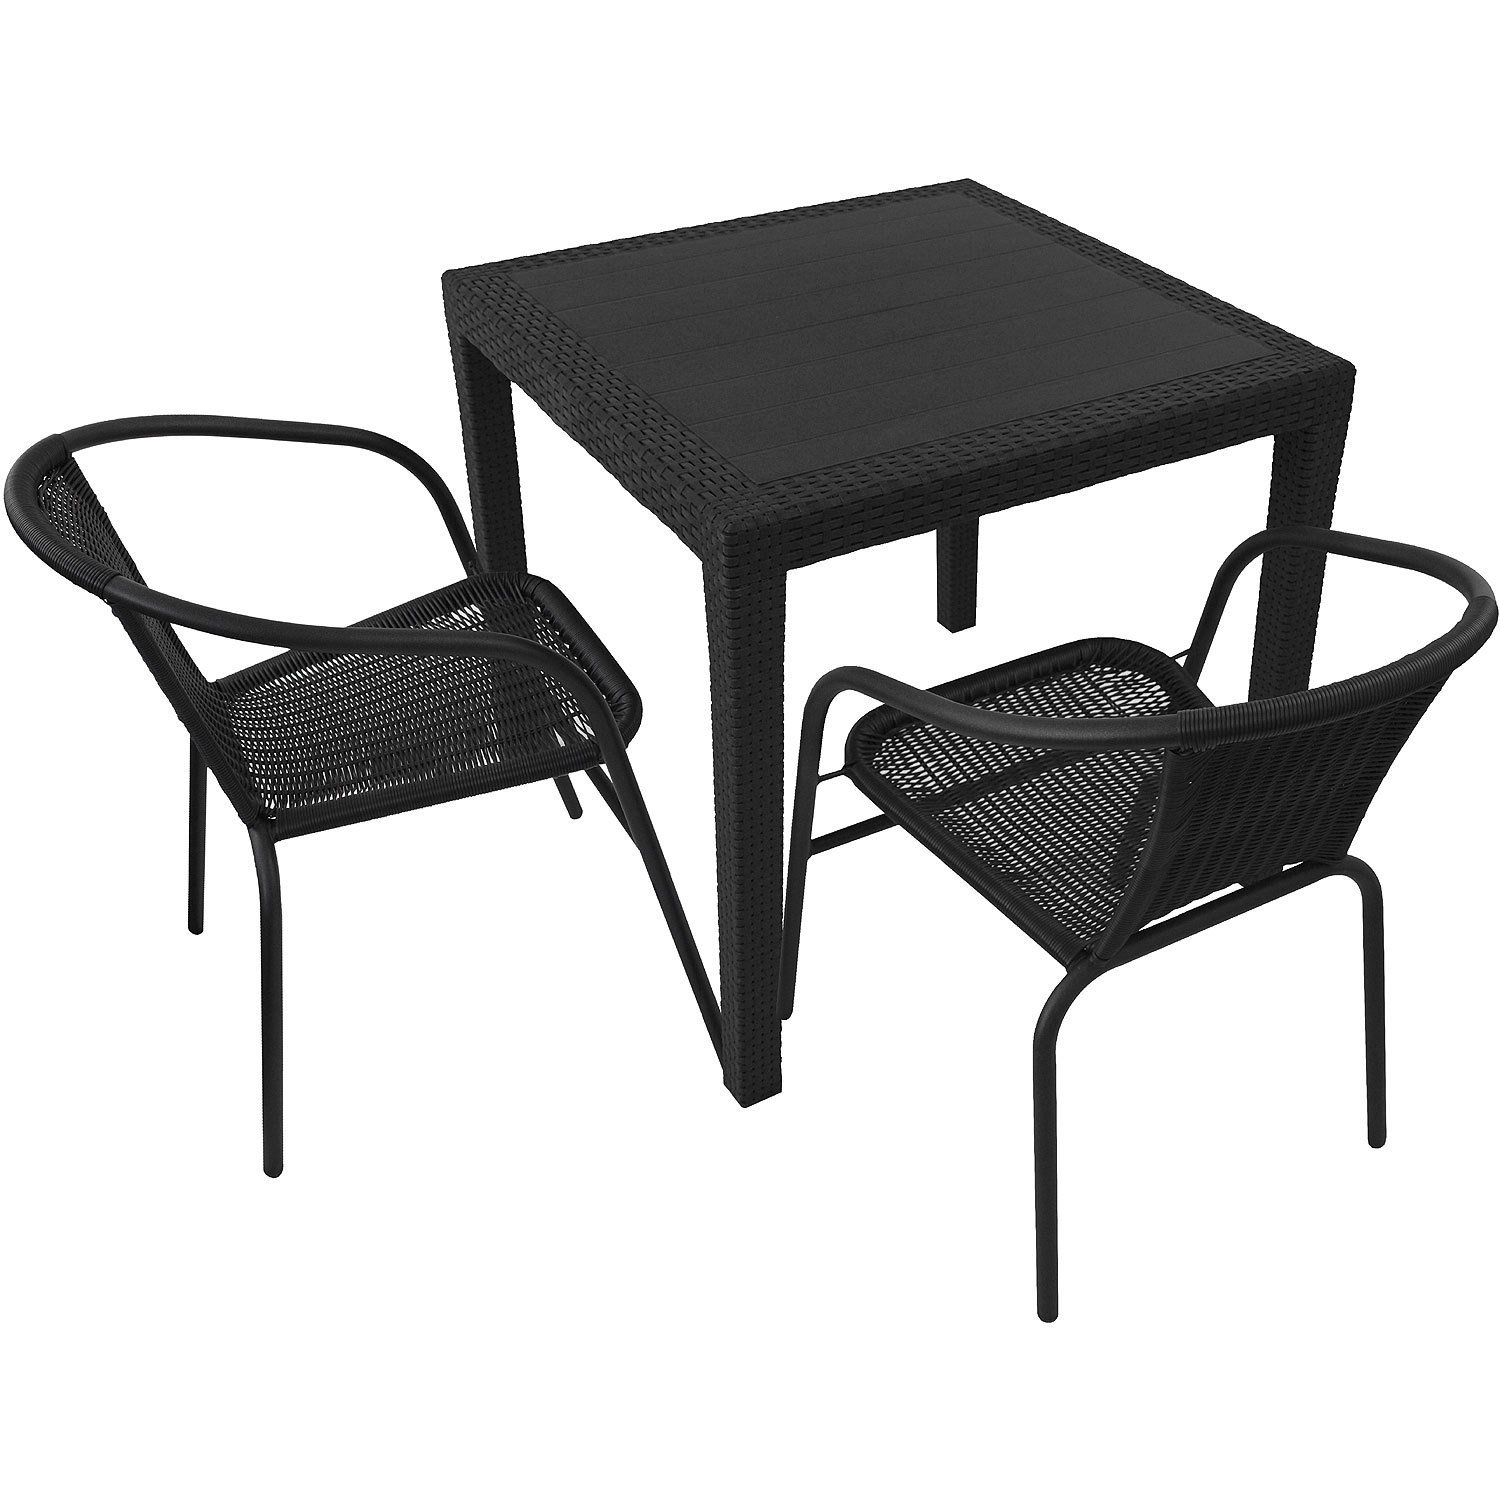 3tlg balkonm bel set gartentisch vollkunststoff rattan optik 79x79cm poly rattan bistrostuhl. Black Bedroom Furniture Sets. Home Design Ideas